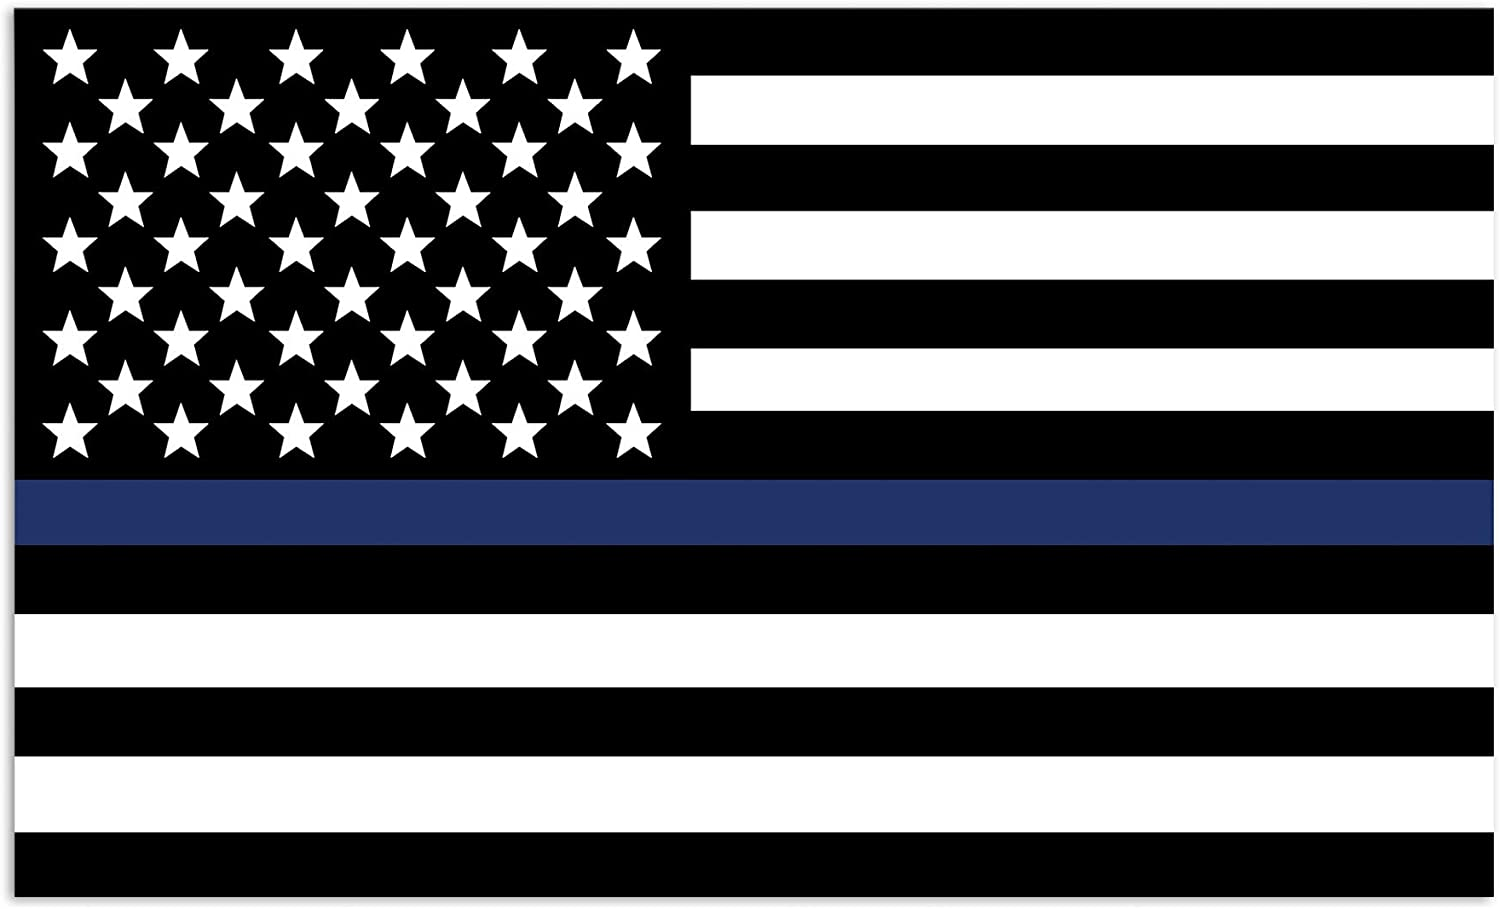 Mind Your Magnets American Flag Car Magnets - Car Magnets and Decals - Blue Lives Matter Flags - Car Magnet Decal - Thin Blue Line - Flag Magnet - Police, Sheriff, SWAT, Air Force, Navy Flags